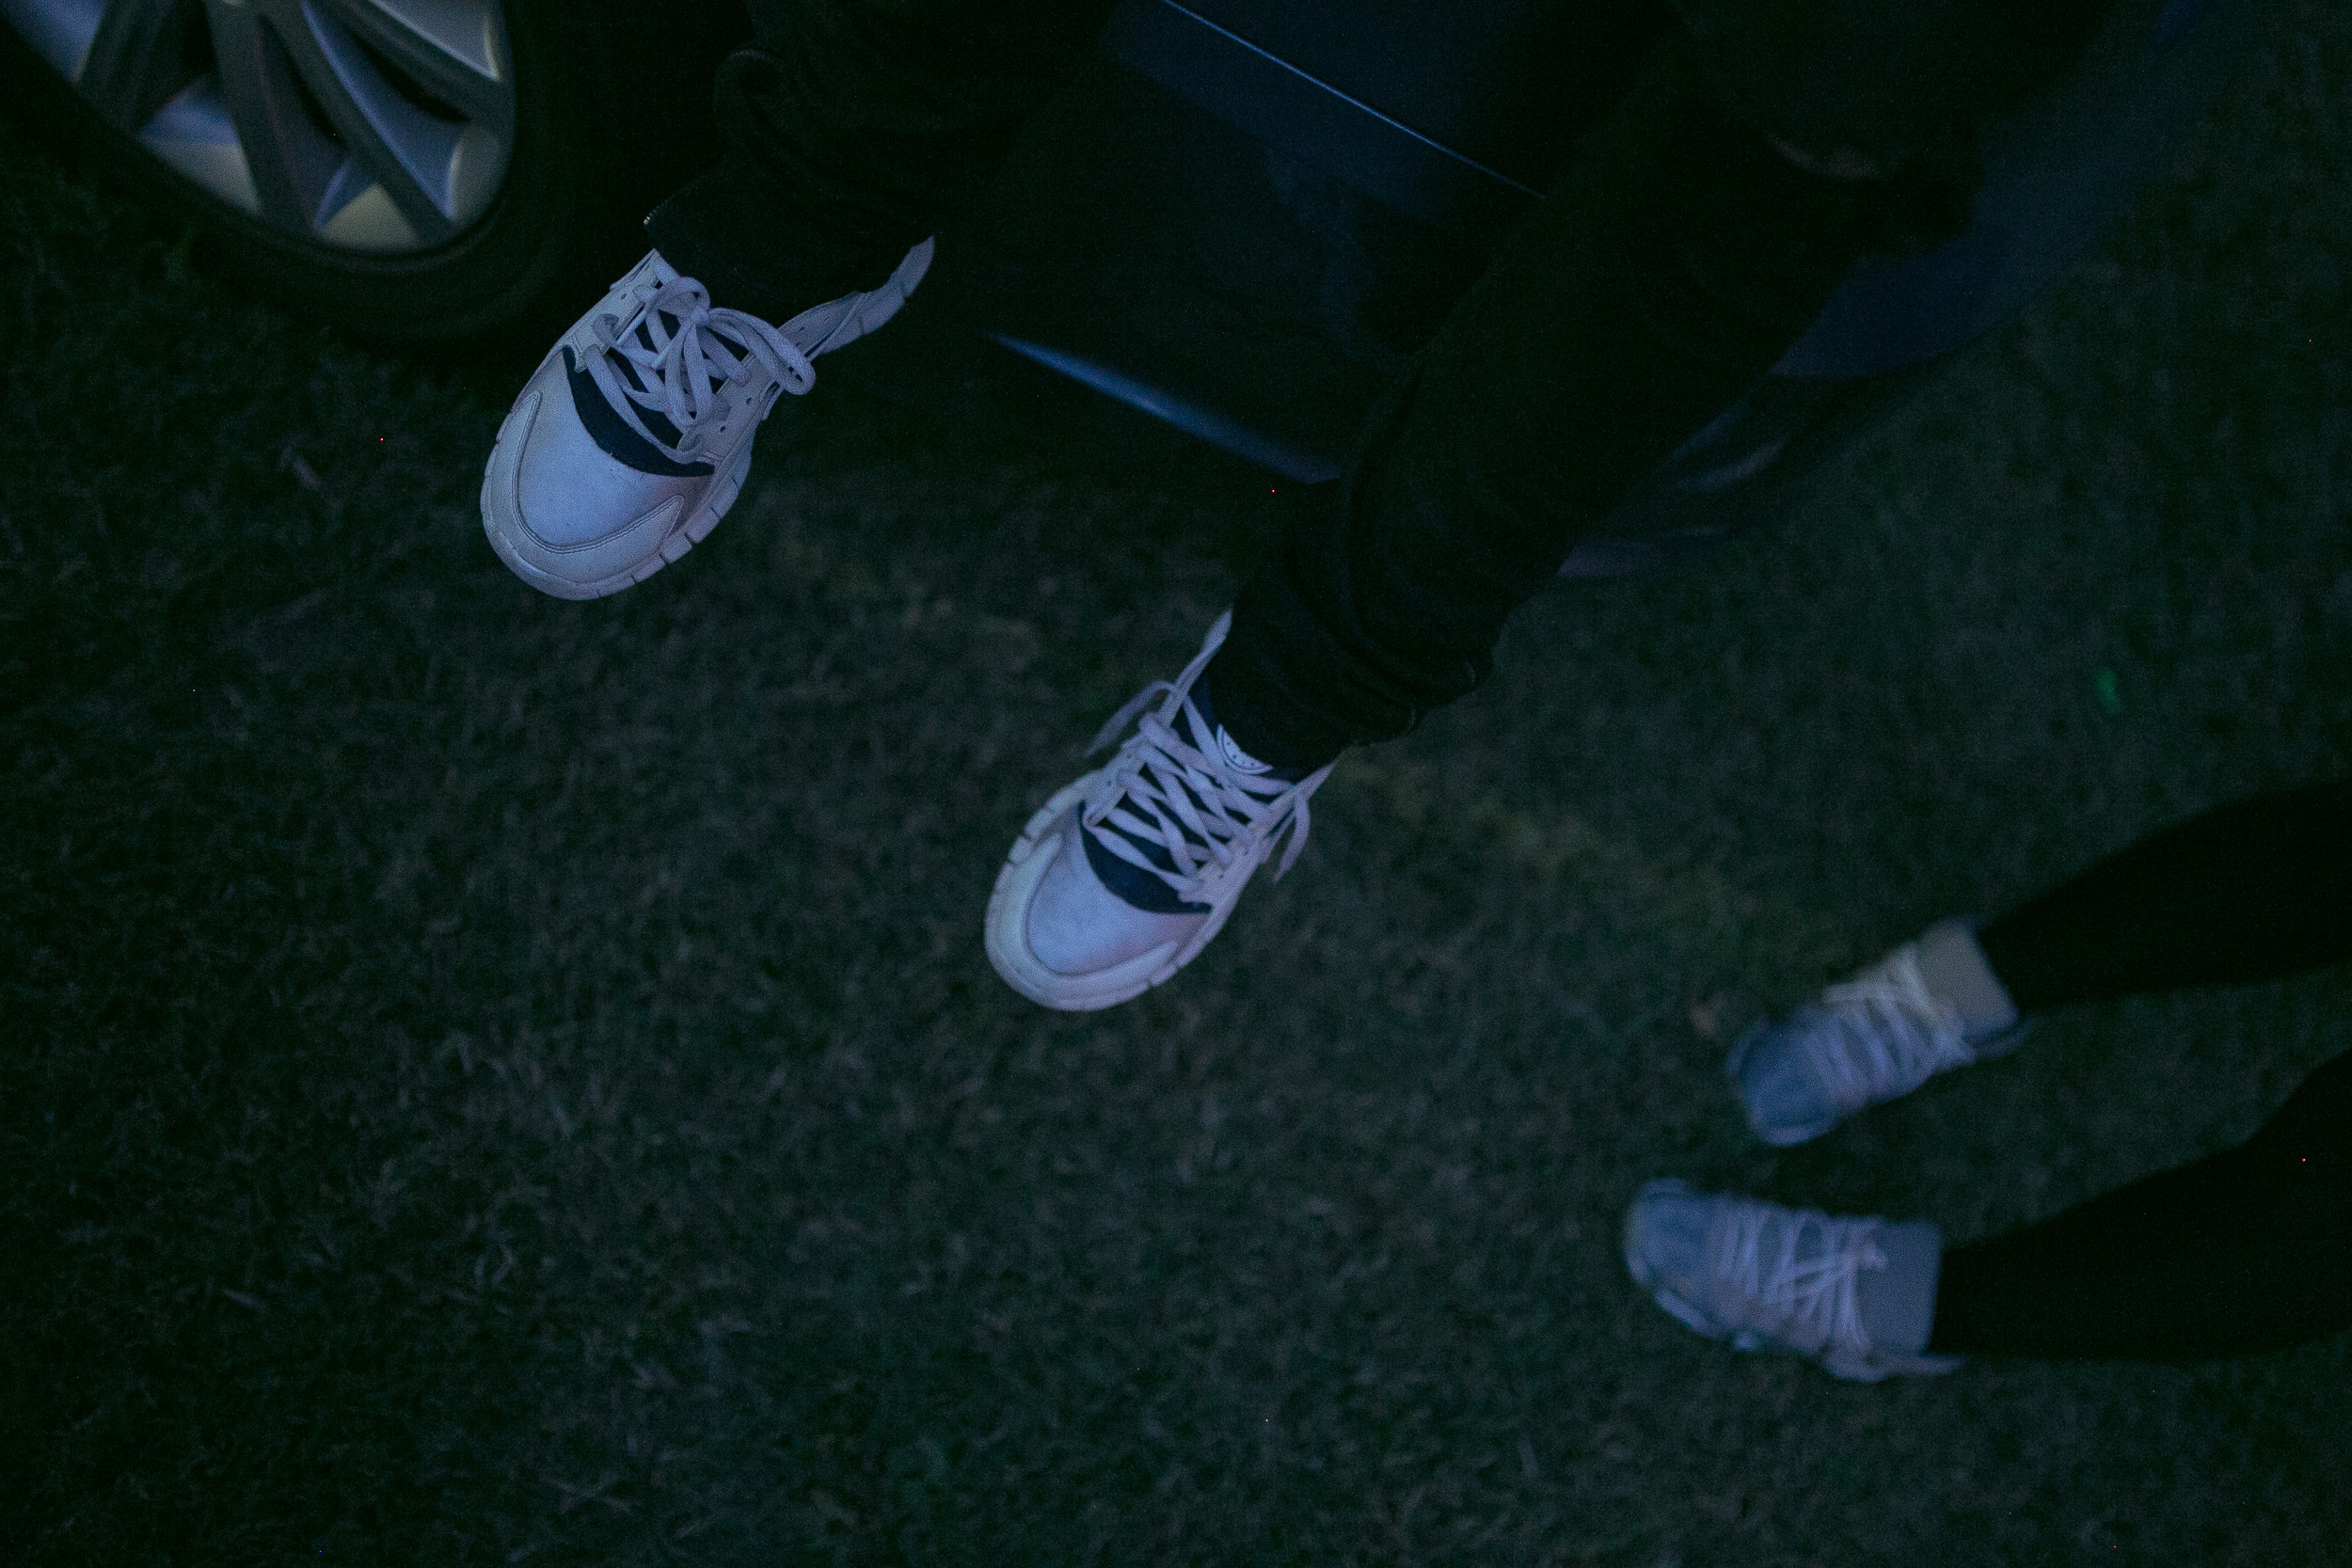 Shoes and grass.jpg